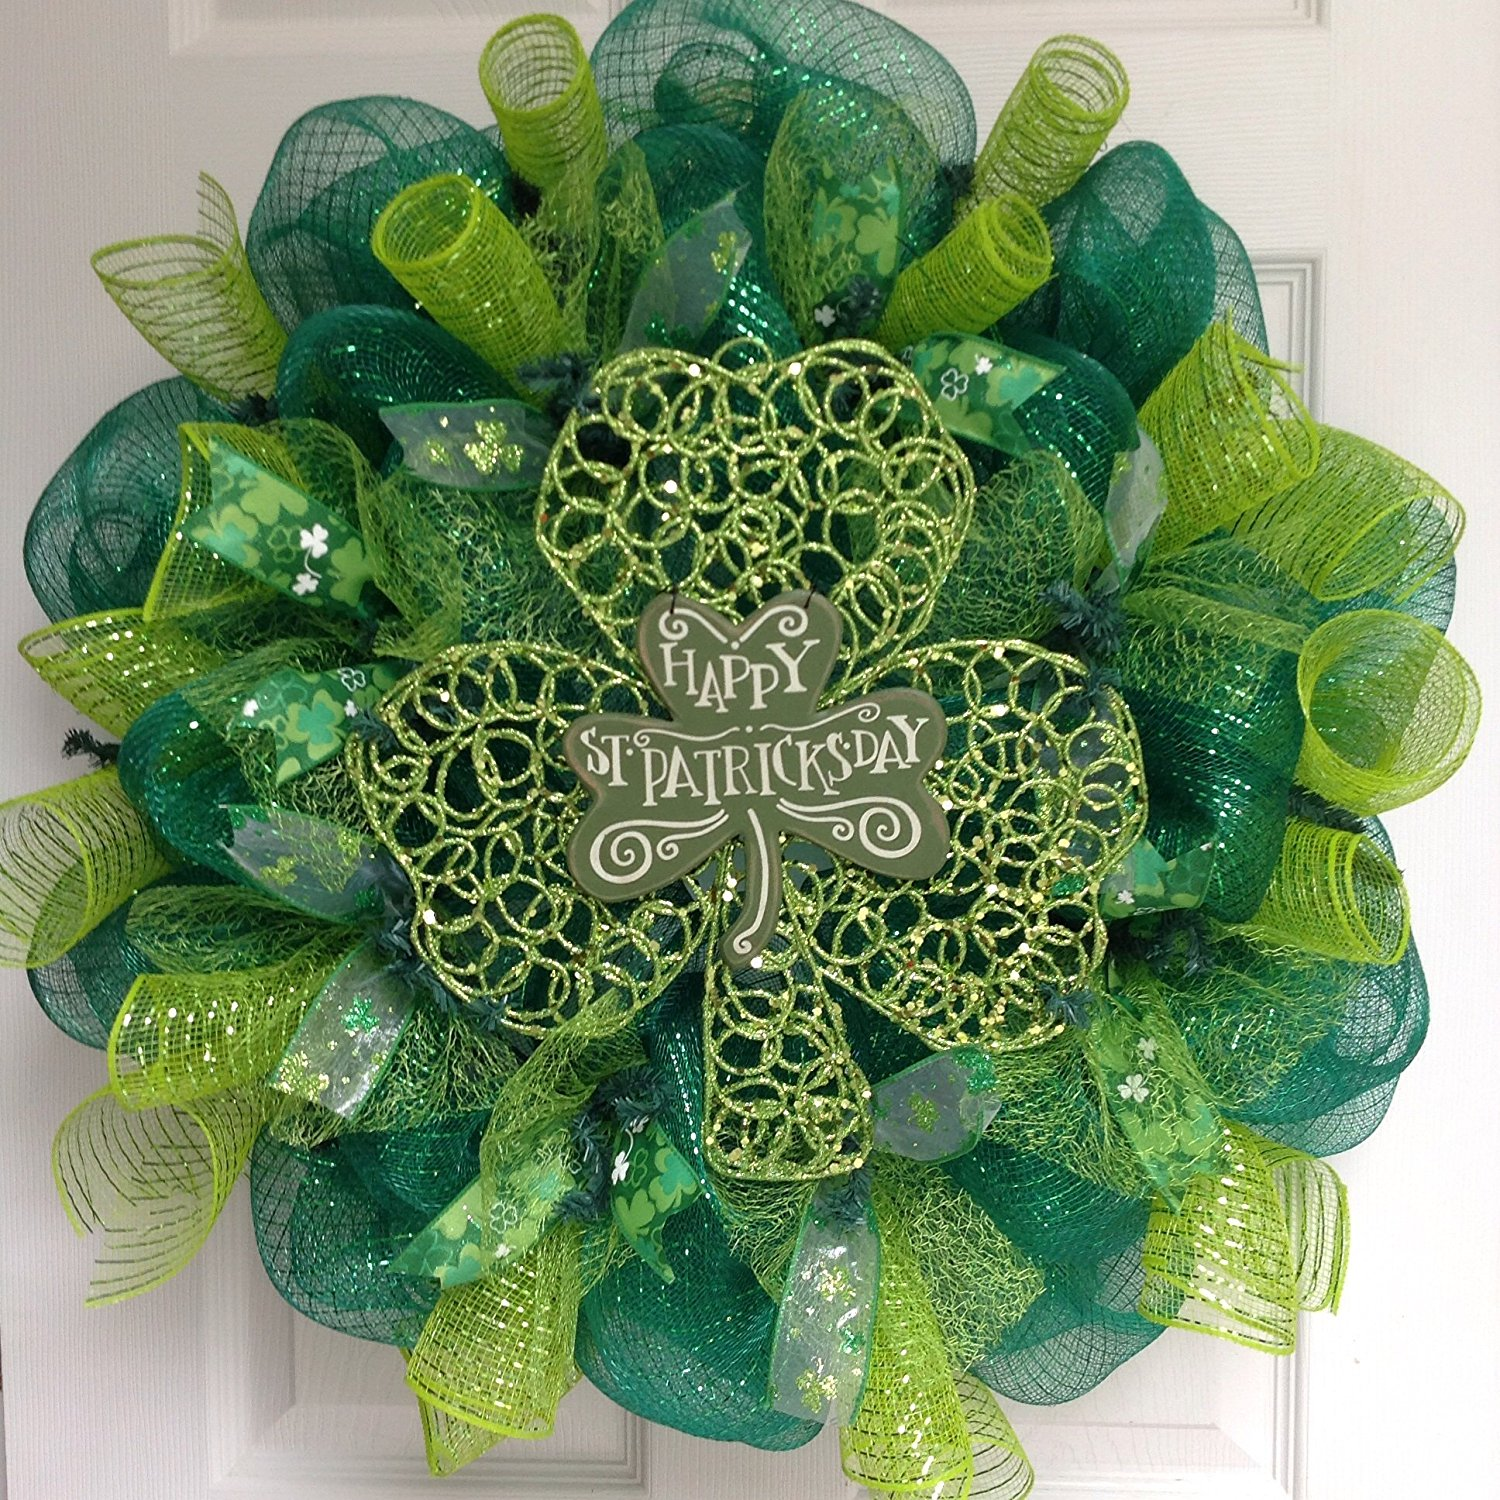 Happy St Patrick's Day Glittering Shamrock Deco Mesh Wreath from Amazon.com